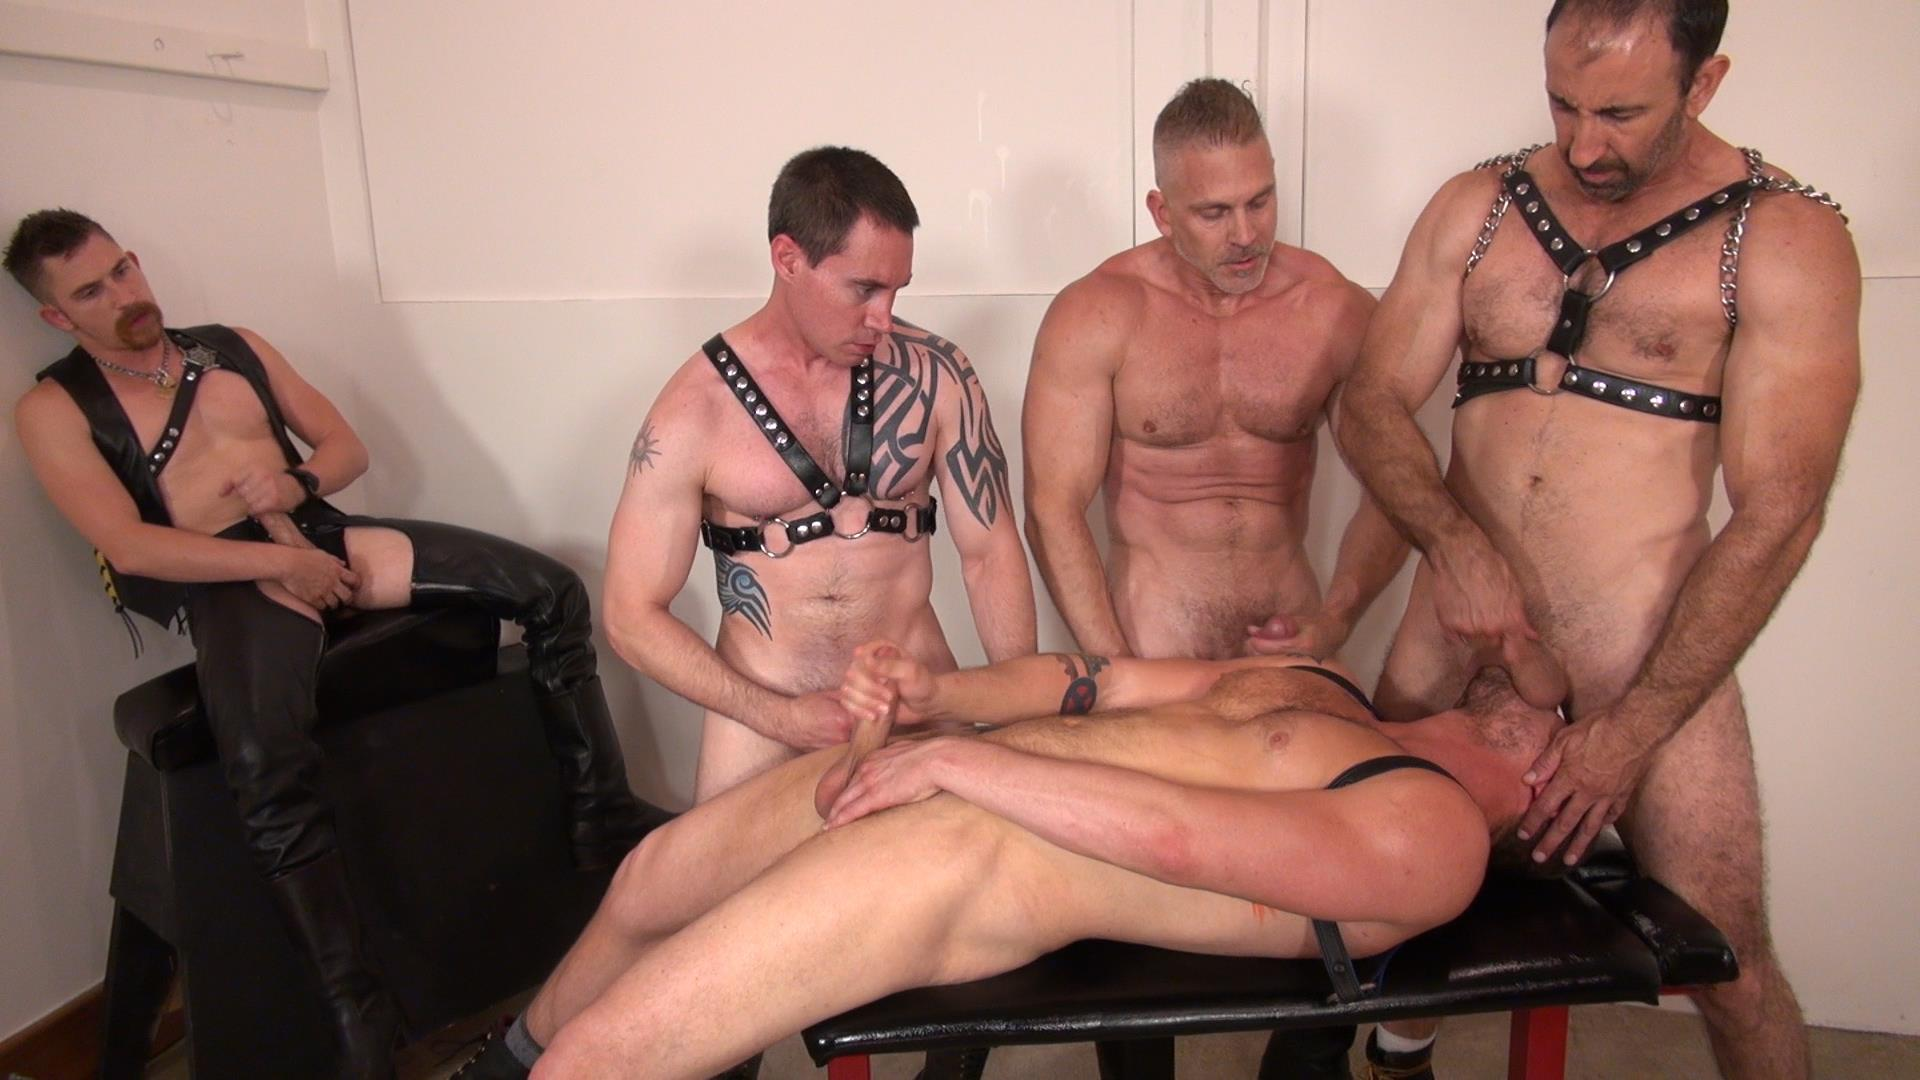 Raw and Rough Jason Mitchell Steven Richards Sam Dixon Blue Bailey Dayton OConnor Jose del Toro Bareback Bathhouse Amateur Gay Porn 07 Blue Bailey Getting Fucked Bareback By 5 Guys At A Bathhouse